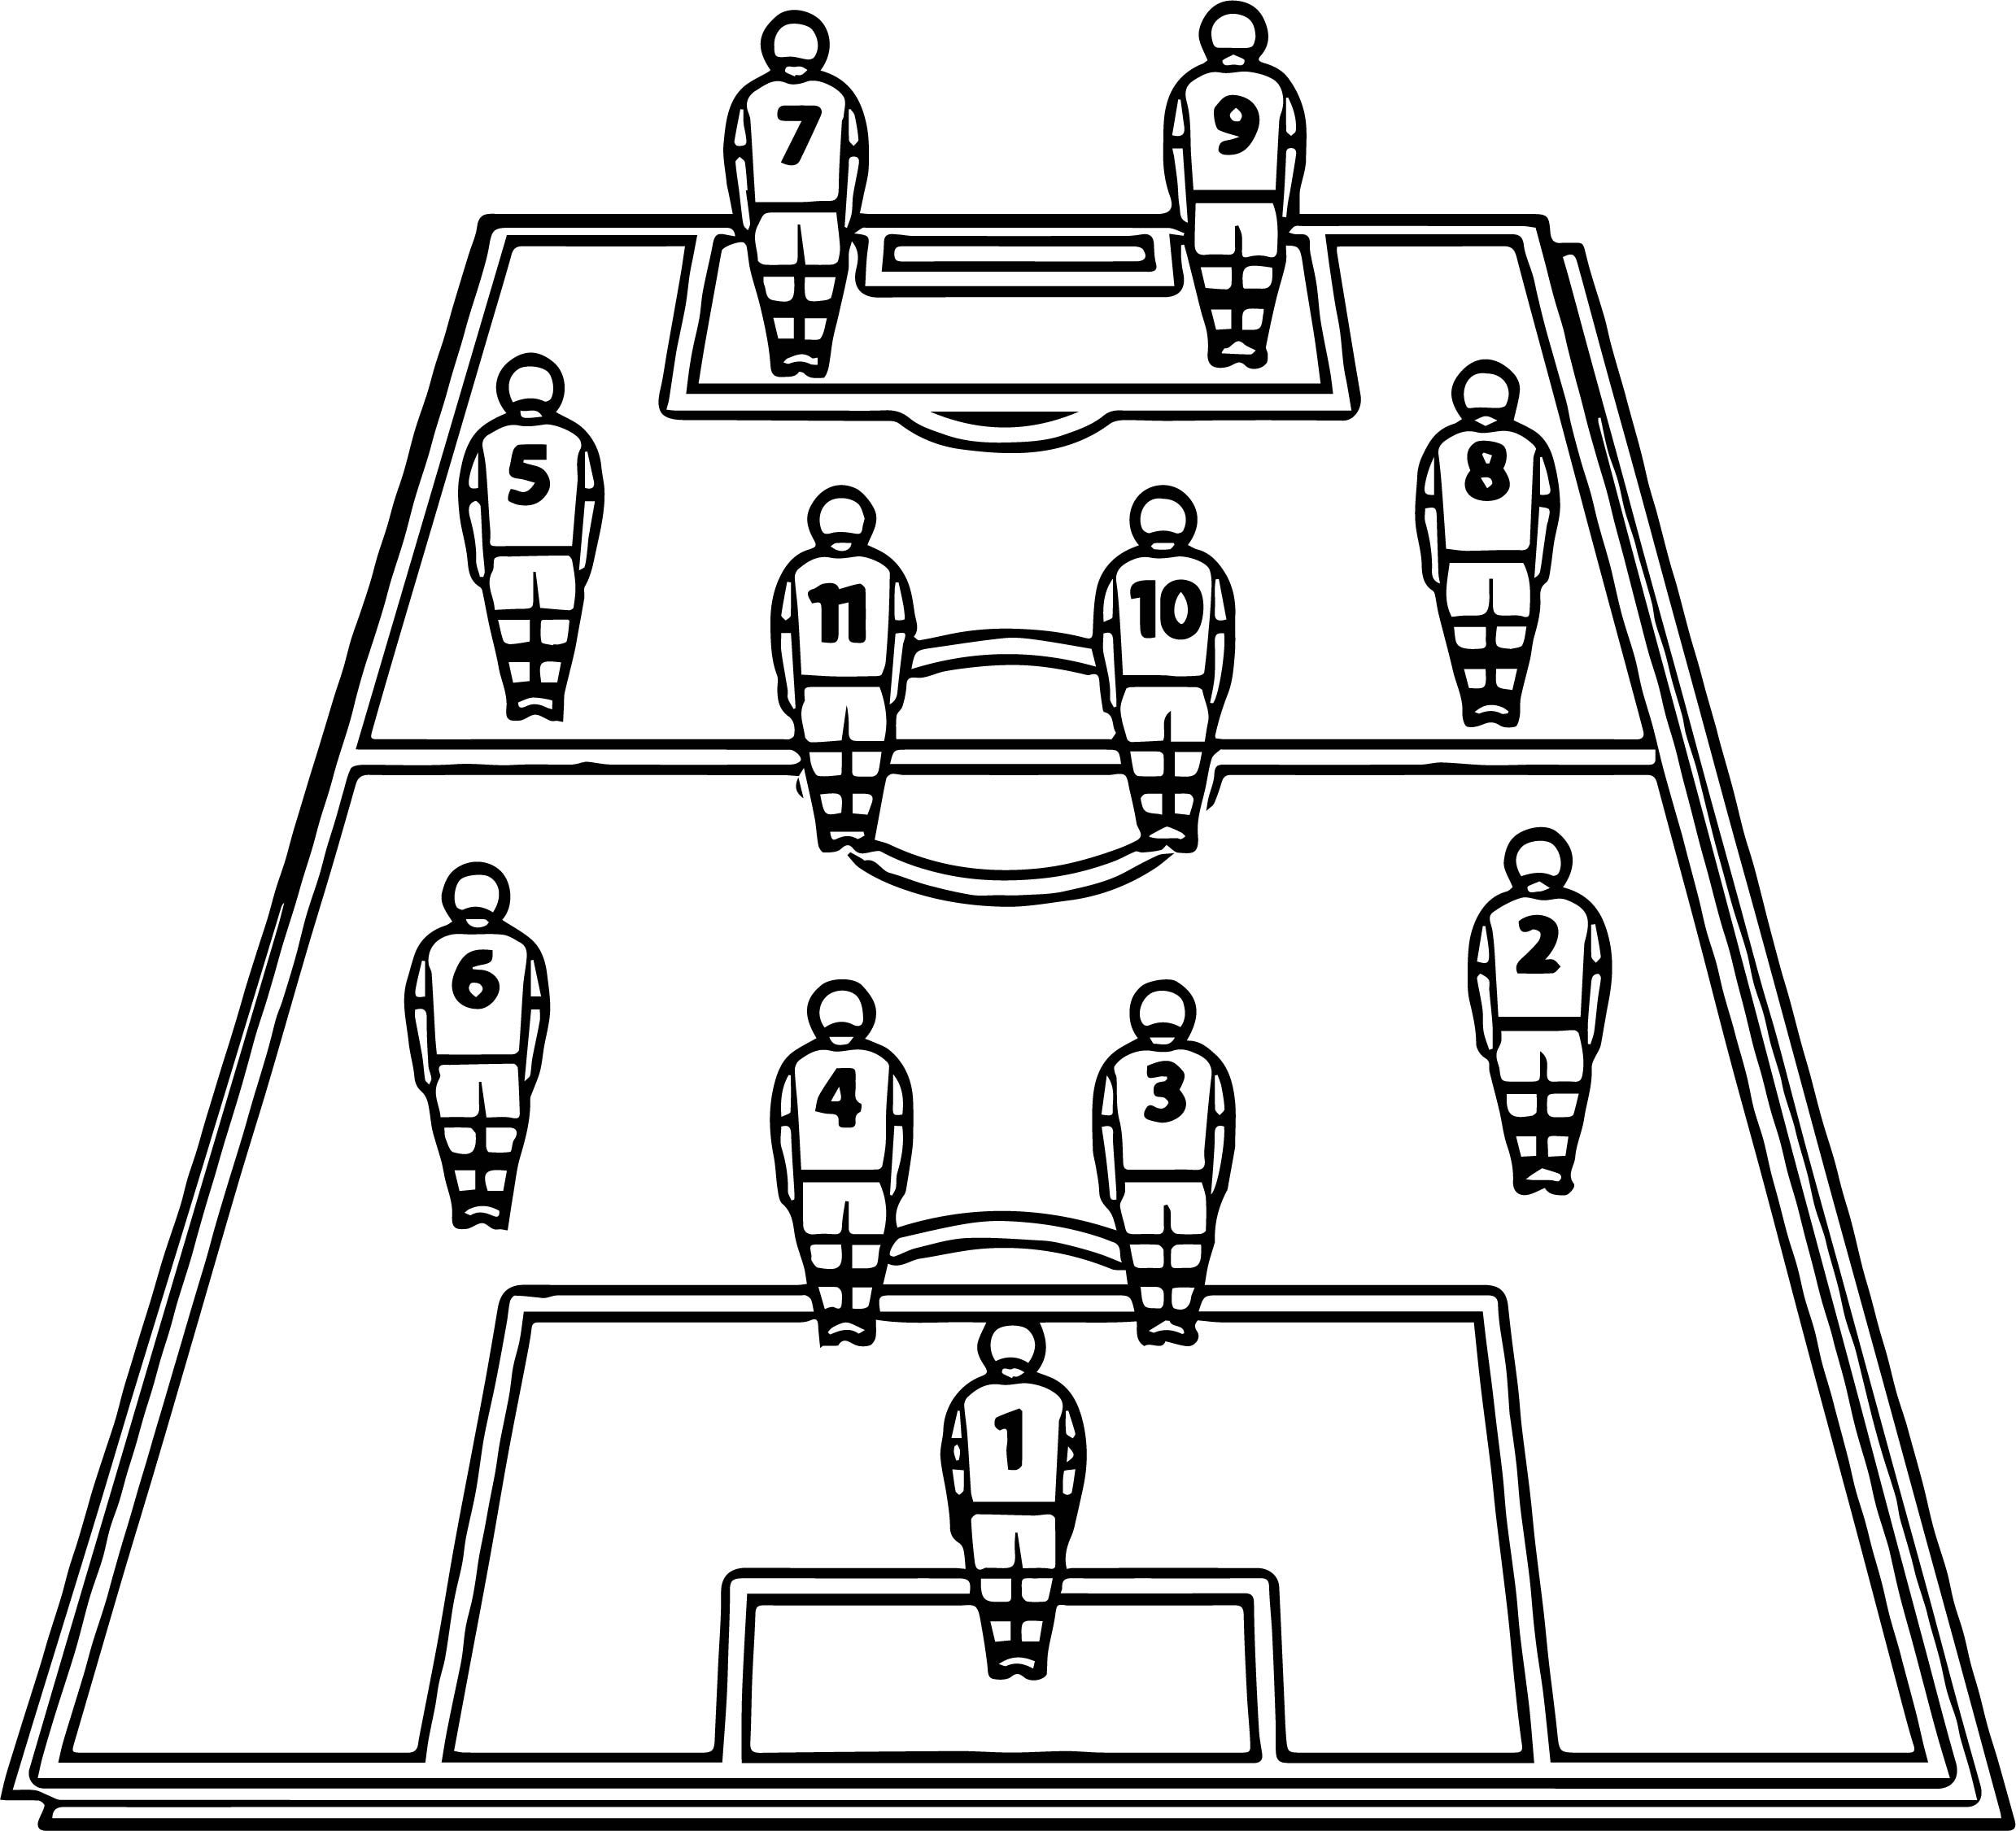 cool Soccer Football Tactics Board Players Field Coloring